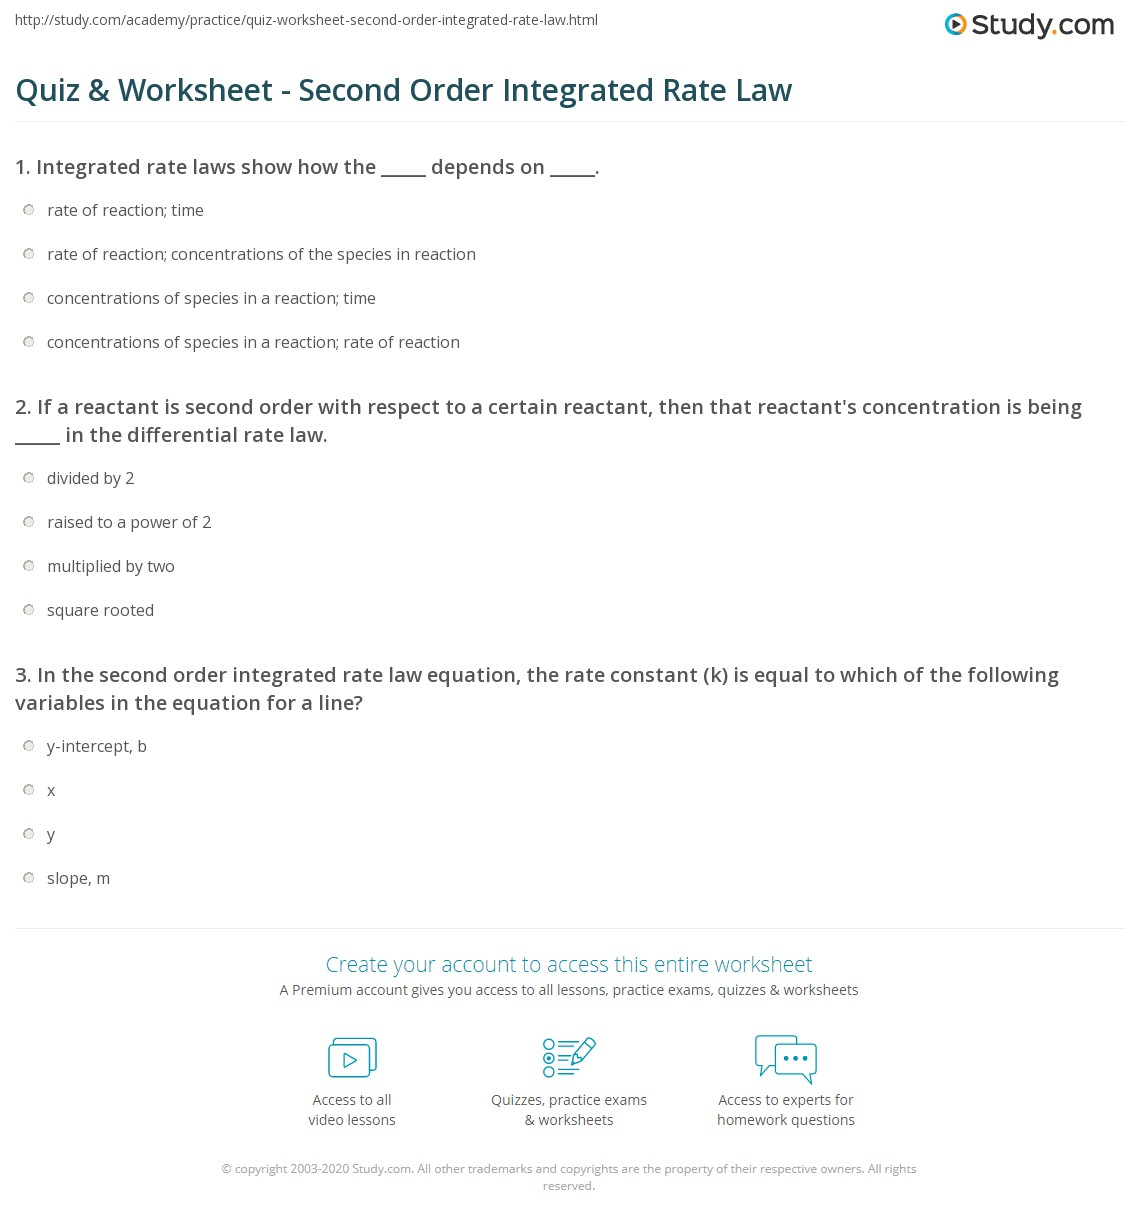 quiz worksheet second order integrated rate law. Black Bedroom Furniture Sets. Home Design Ideas